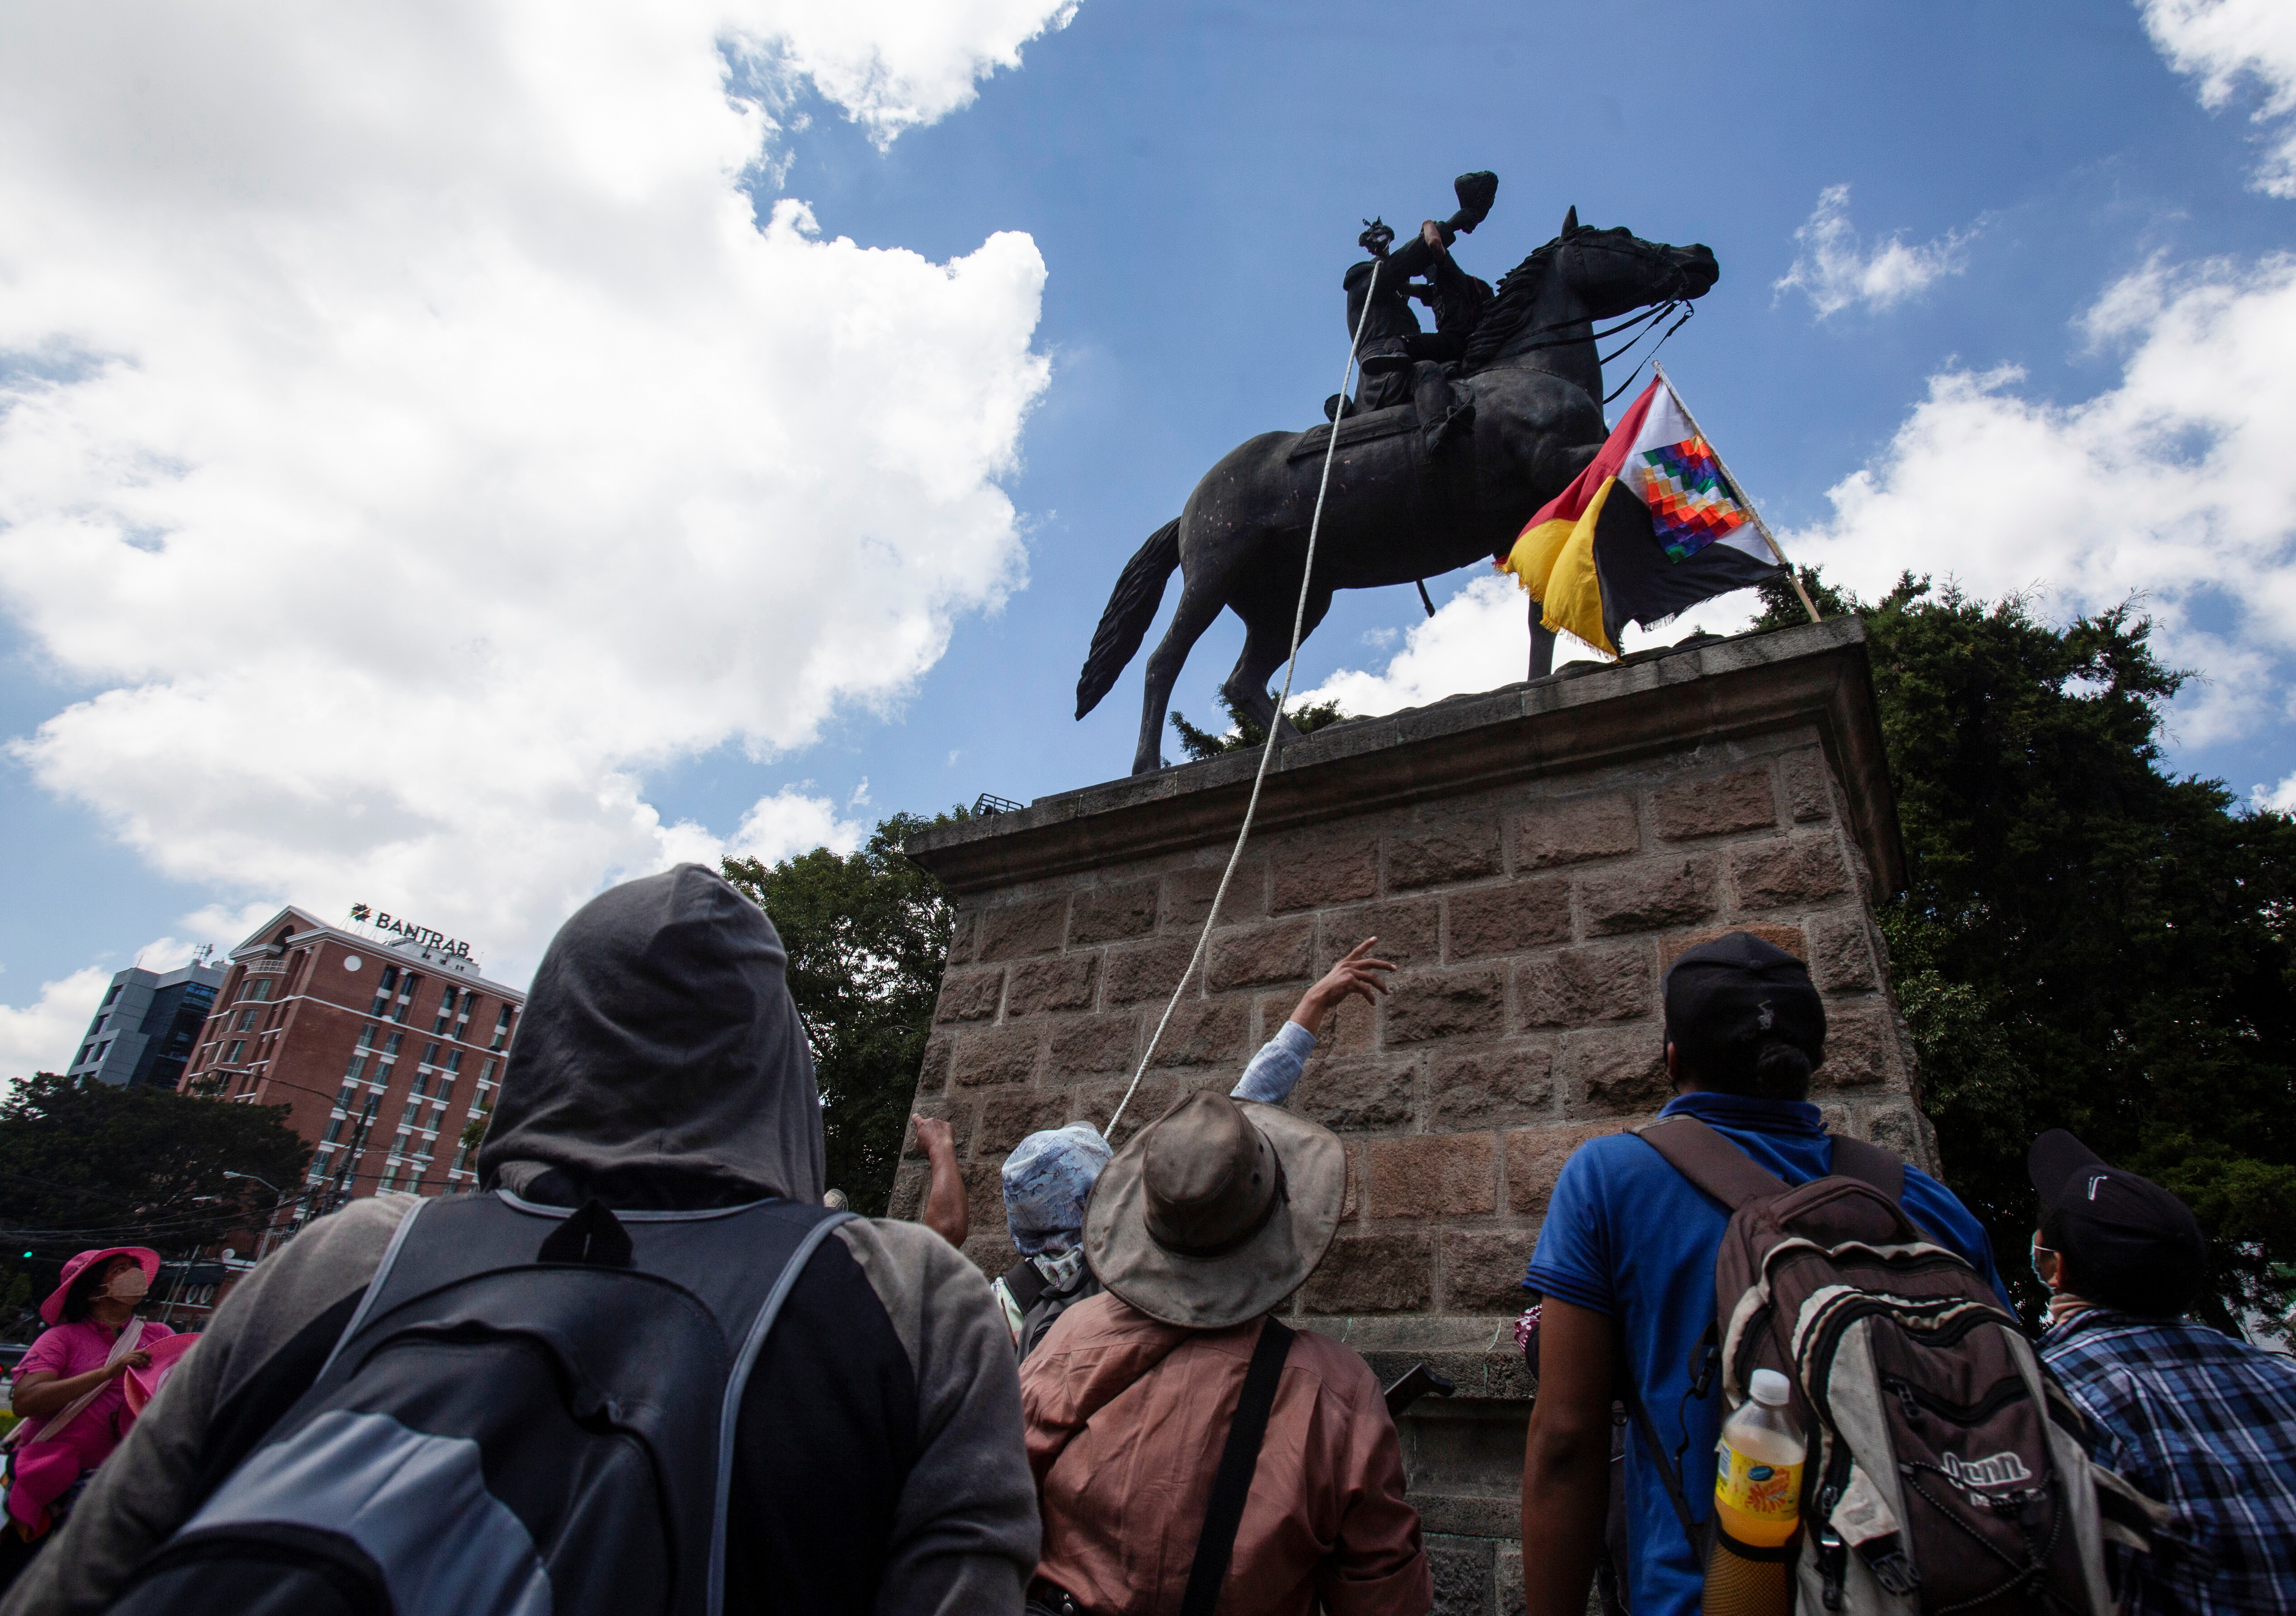 Demonstrators attempt to topple the statue of former President Jose Maria Reina Barrios during protests against the treatment of indigenous people by European conquerors, during Hispanic Heritage Day, in Guatemala City, Guatemala, October 12, 2021. REUTERS/Stringer